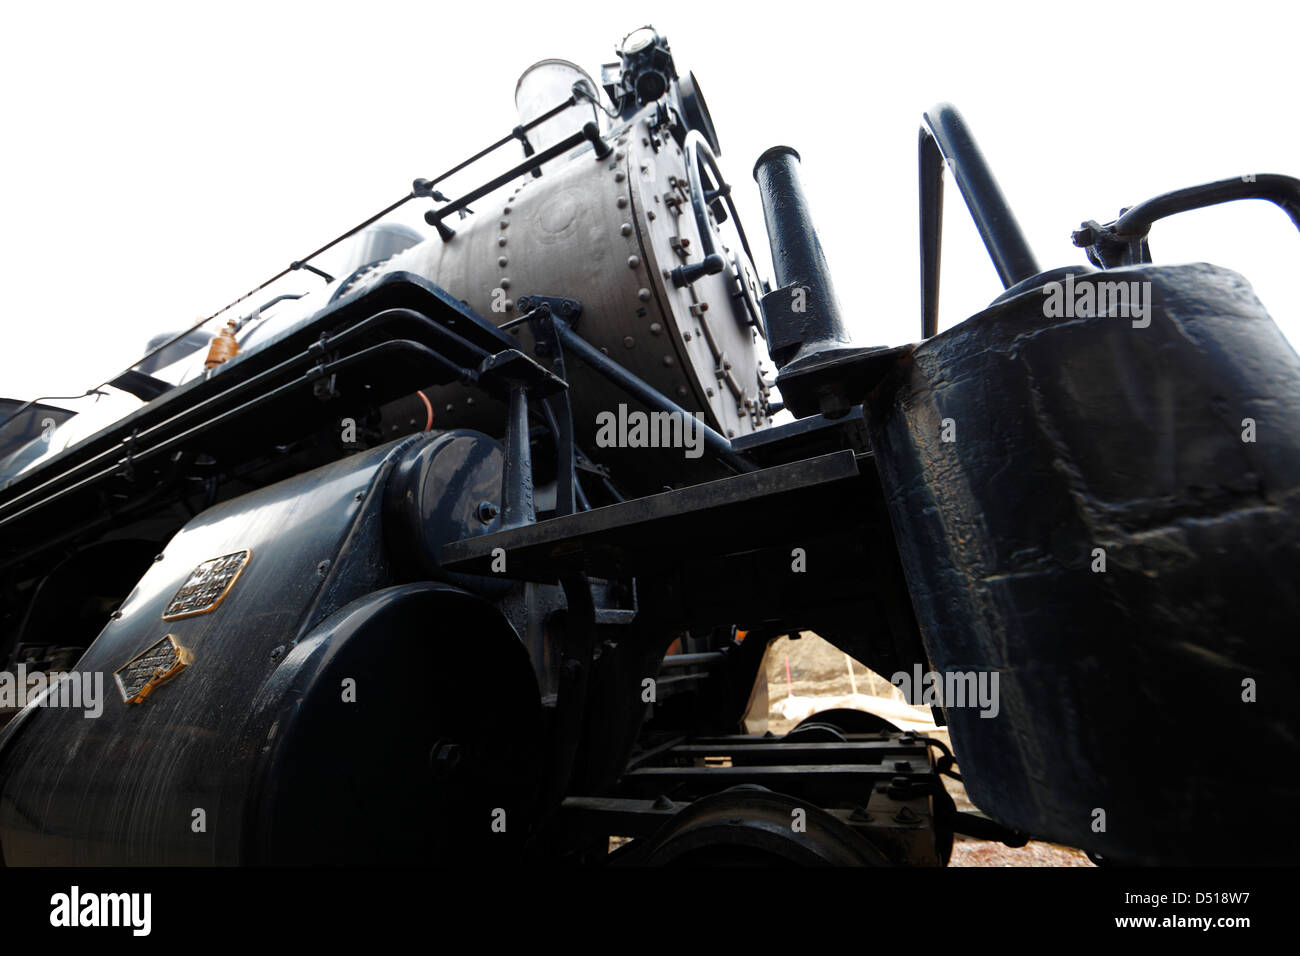 Steam locomotive engine. - Stock Image